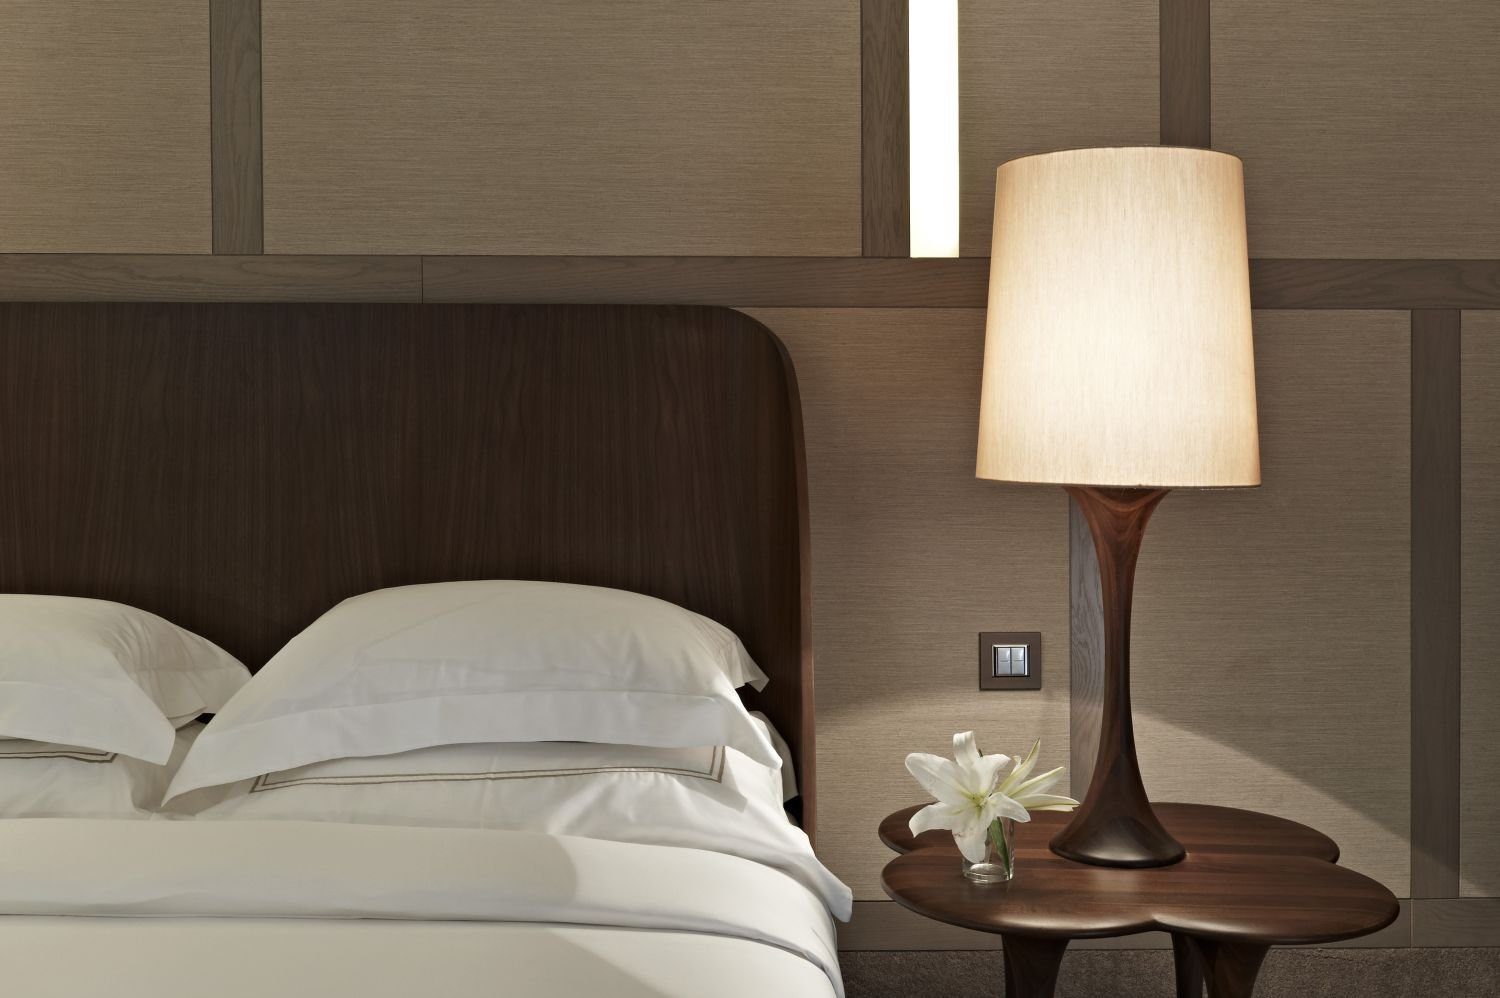 Best Plug In Wall Lamps For Bedroom Bedroom Lamps To Lighting With Pictures